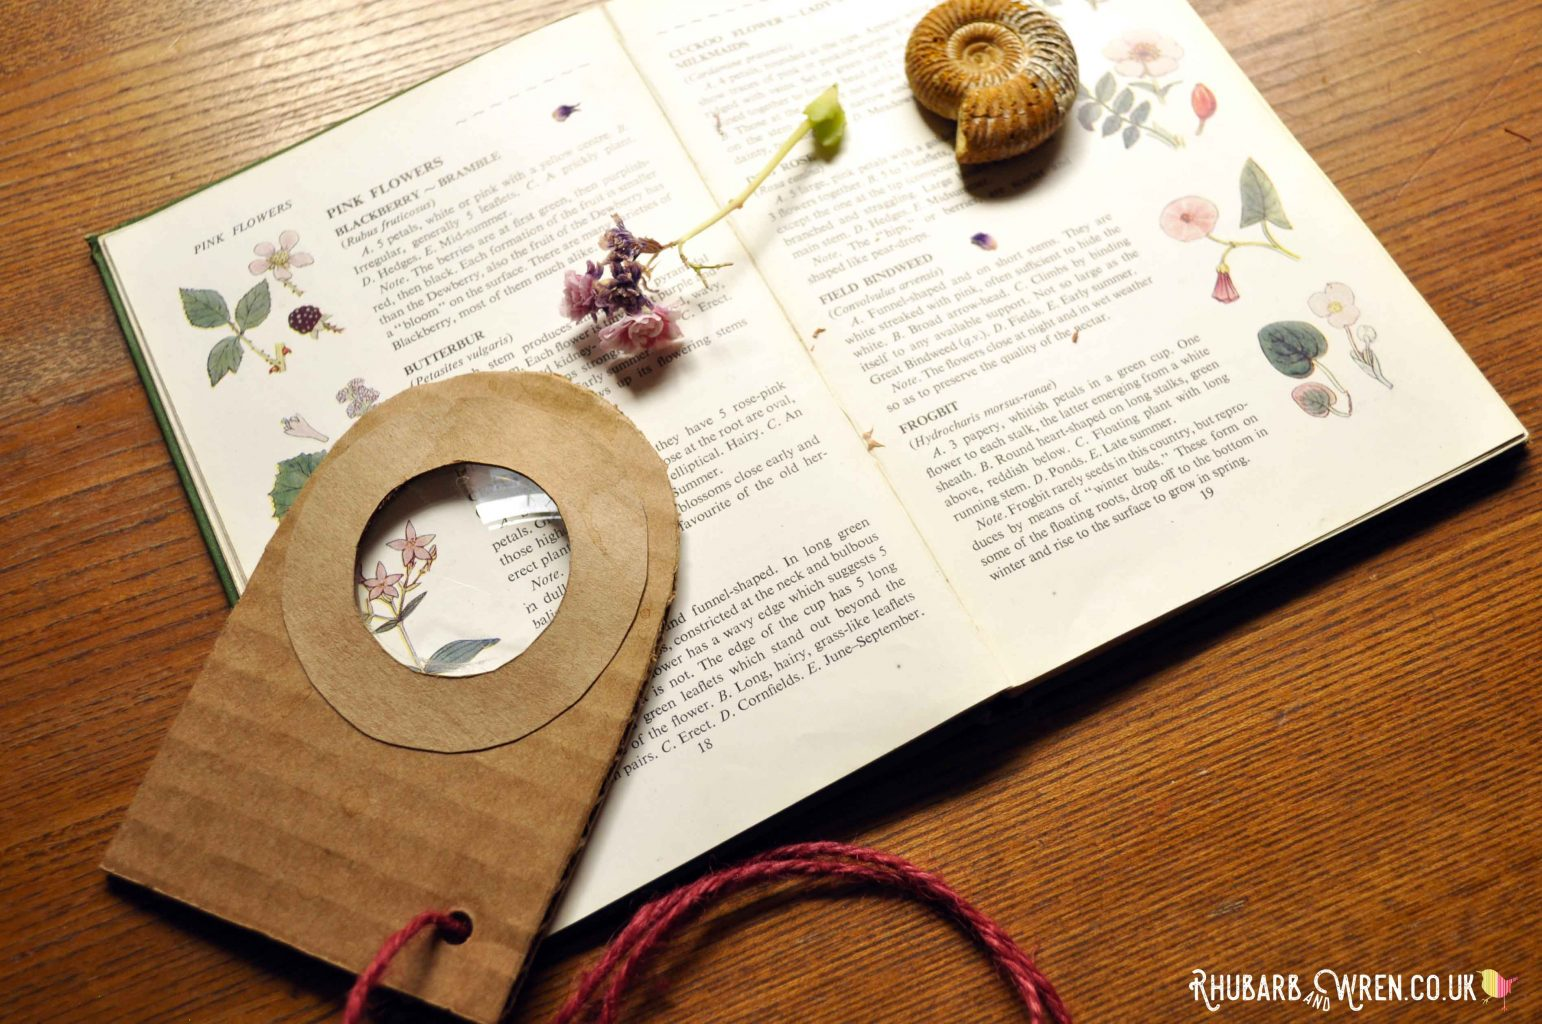 Using a cardboard real magnifying glass to look at a flower book.